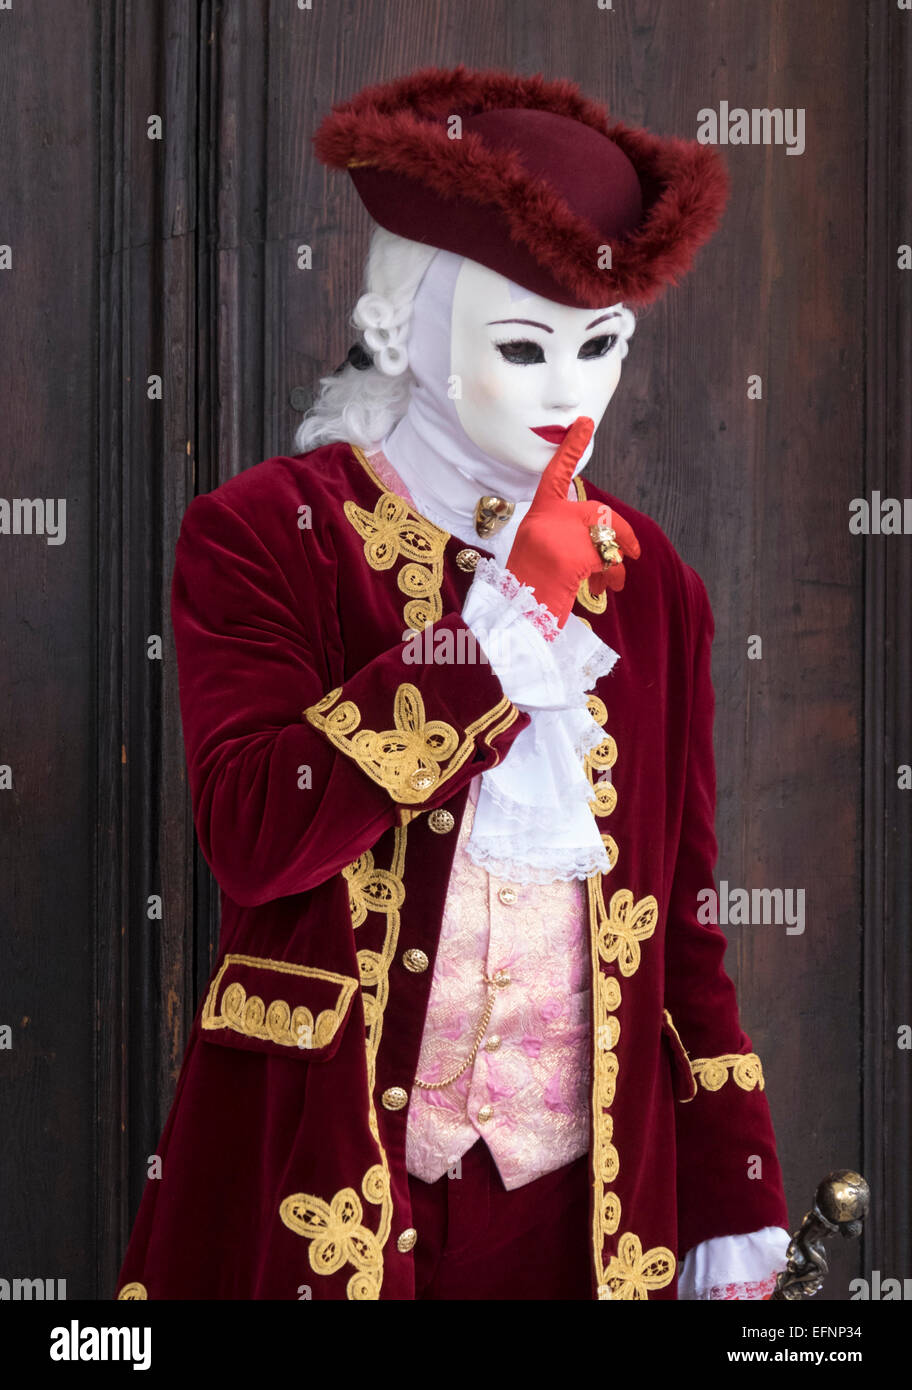 A reveller wearing elaborate costume and mask poses for th camera during the Carnival of Venice, Italy - Stock Image